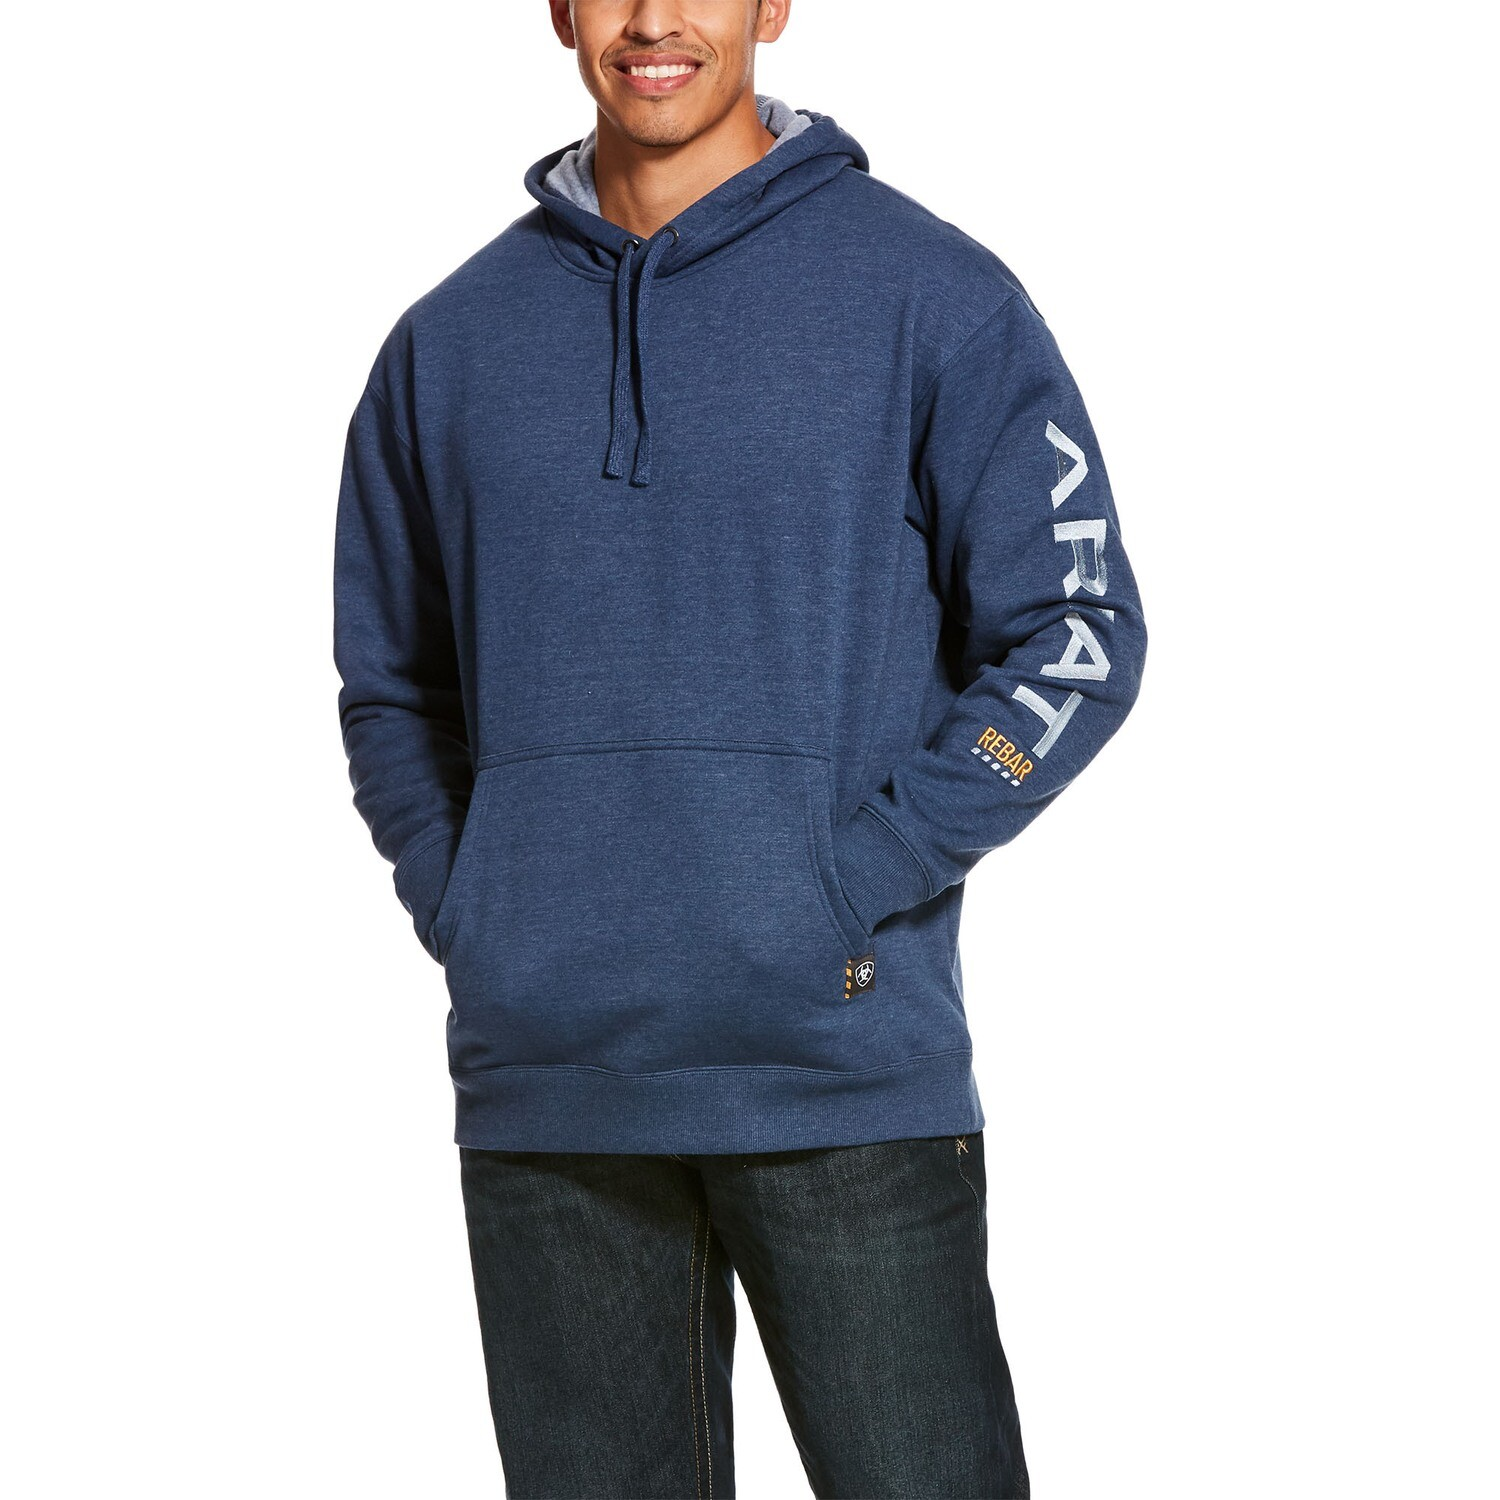 10027816 MNS REBAR GRAPHIC HOOD NAVY HEATHER